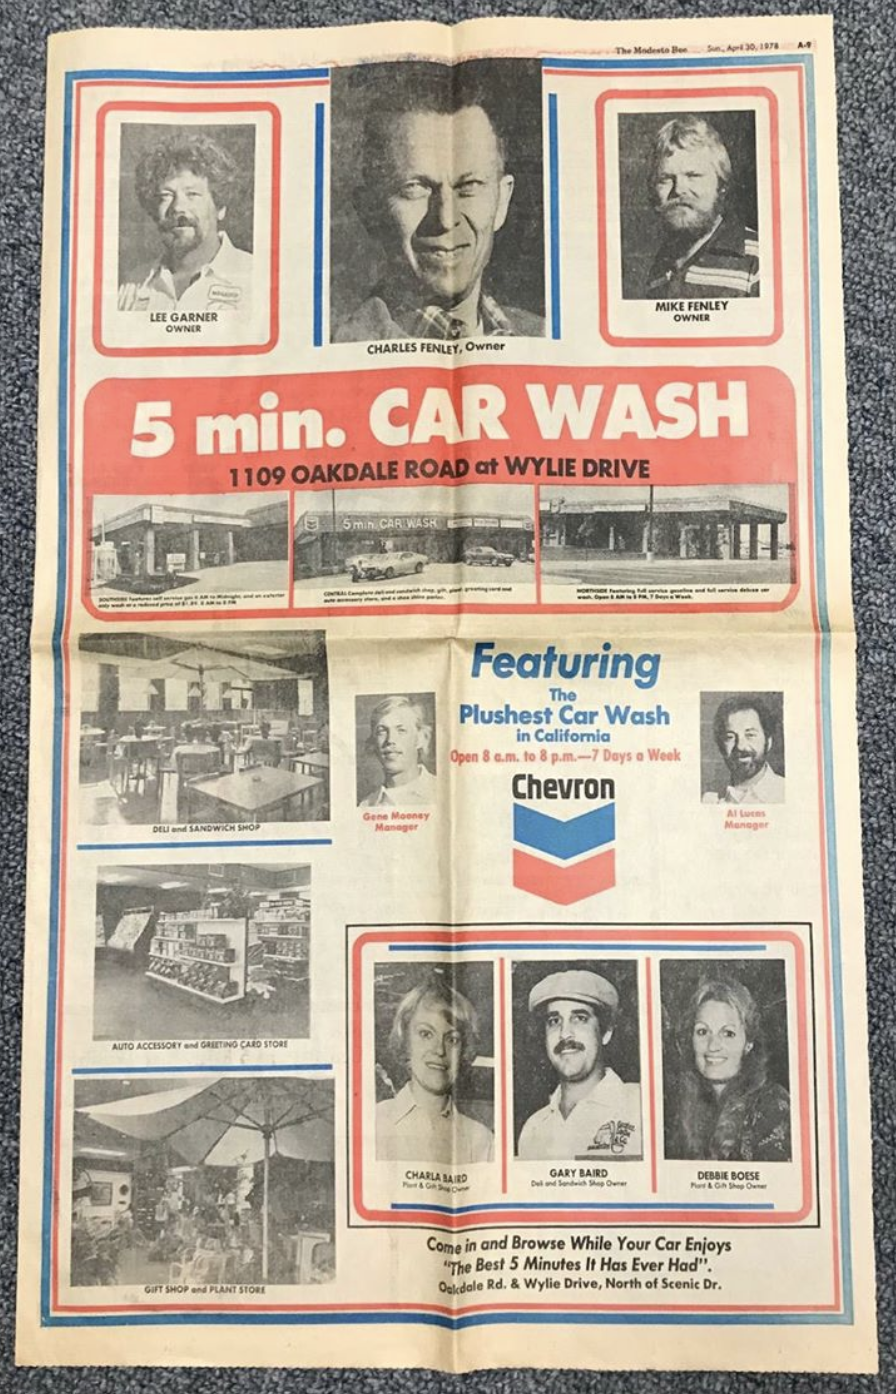 5 Minute CarWash Ad in the Modesto Bee, 1978.